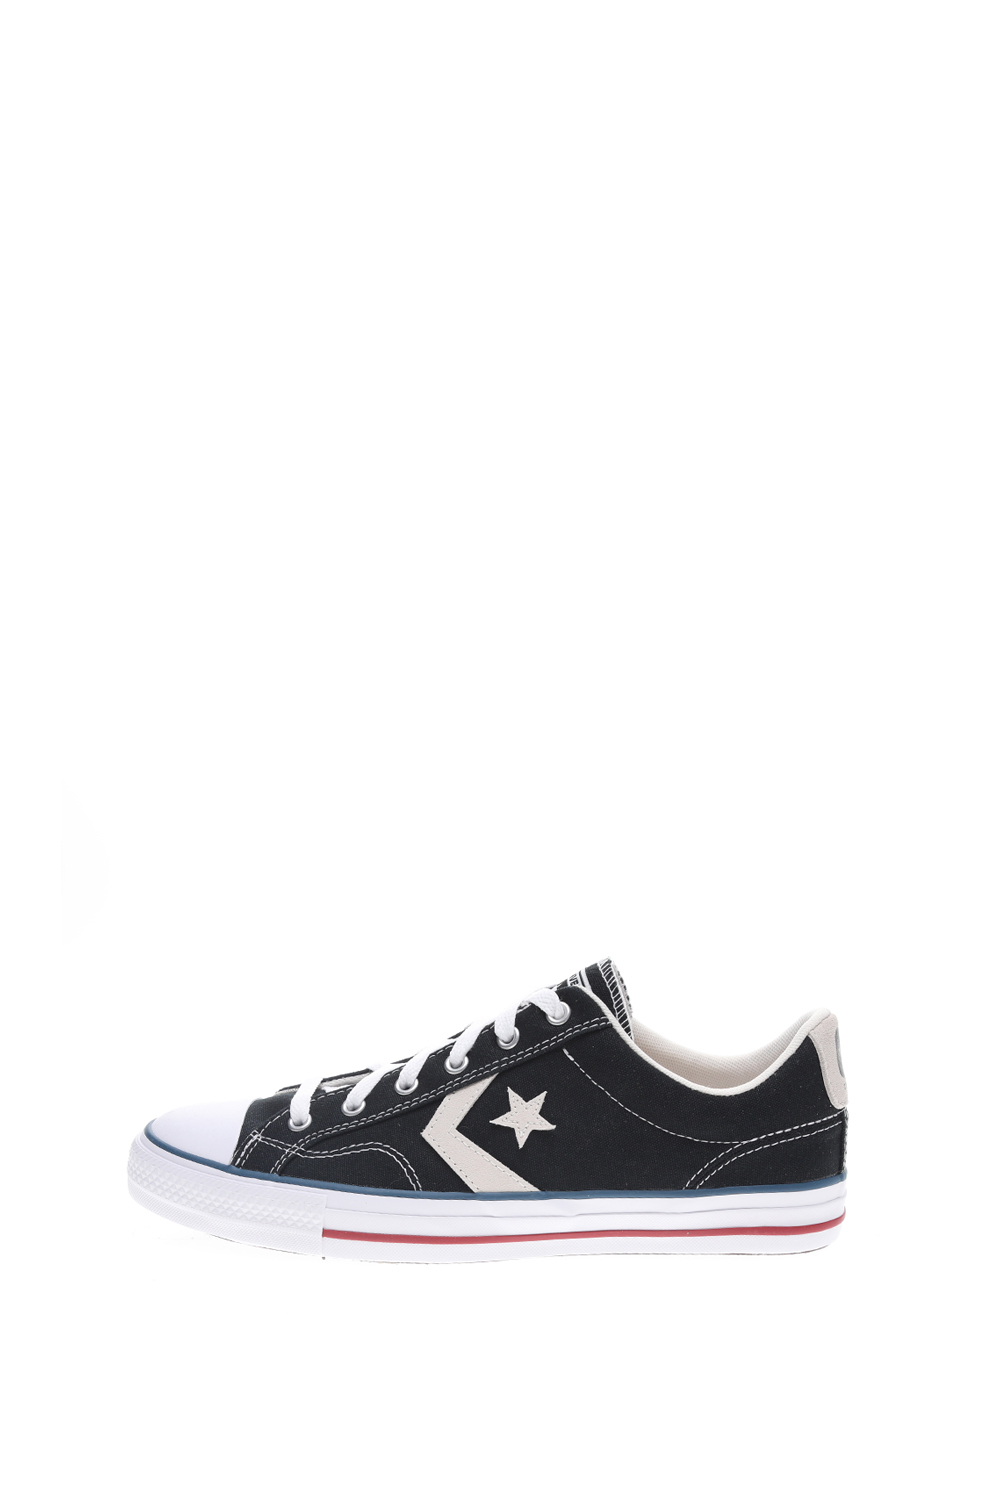 CONVERSE – Ανδρικά sneakers CONVERSE Star Player Ox μαύρα